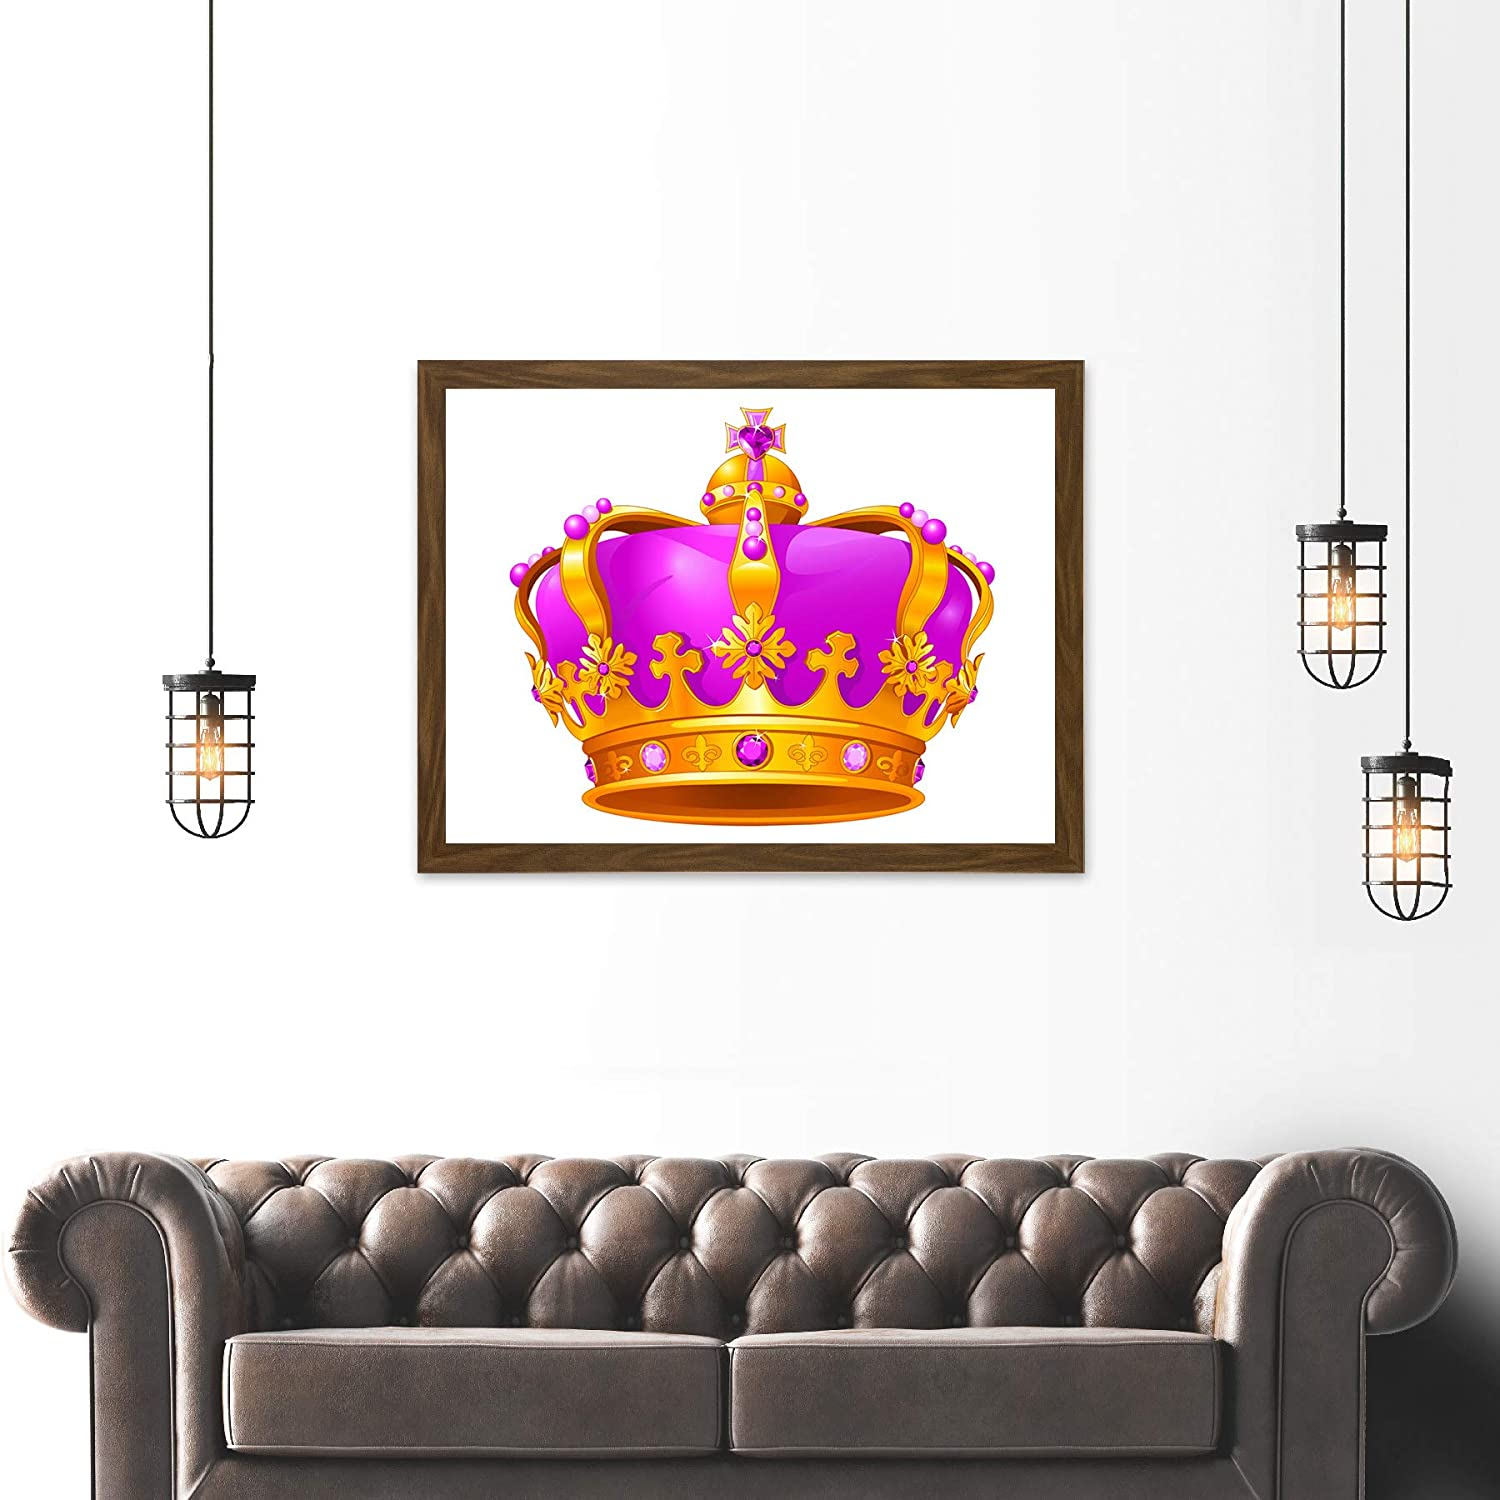 Cartoon Crown Jewels – A monarch may often be shown wearing them in portraits.